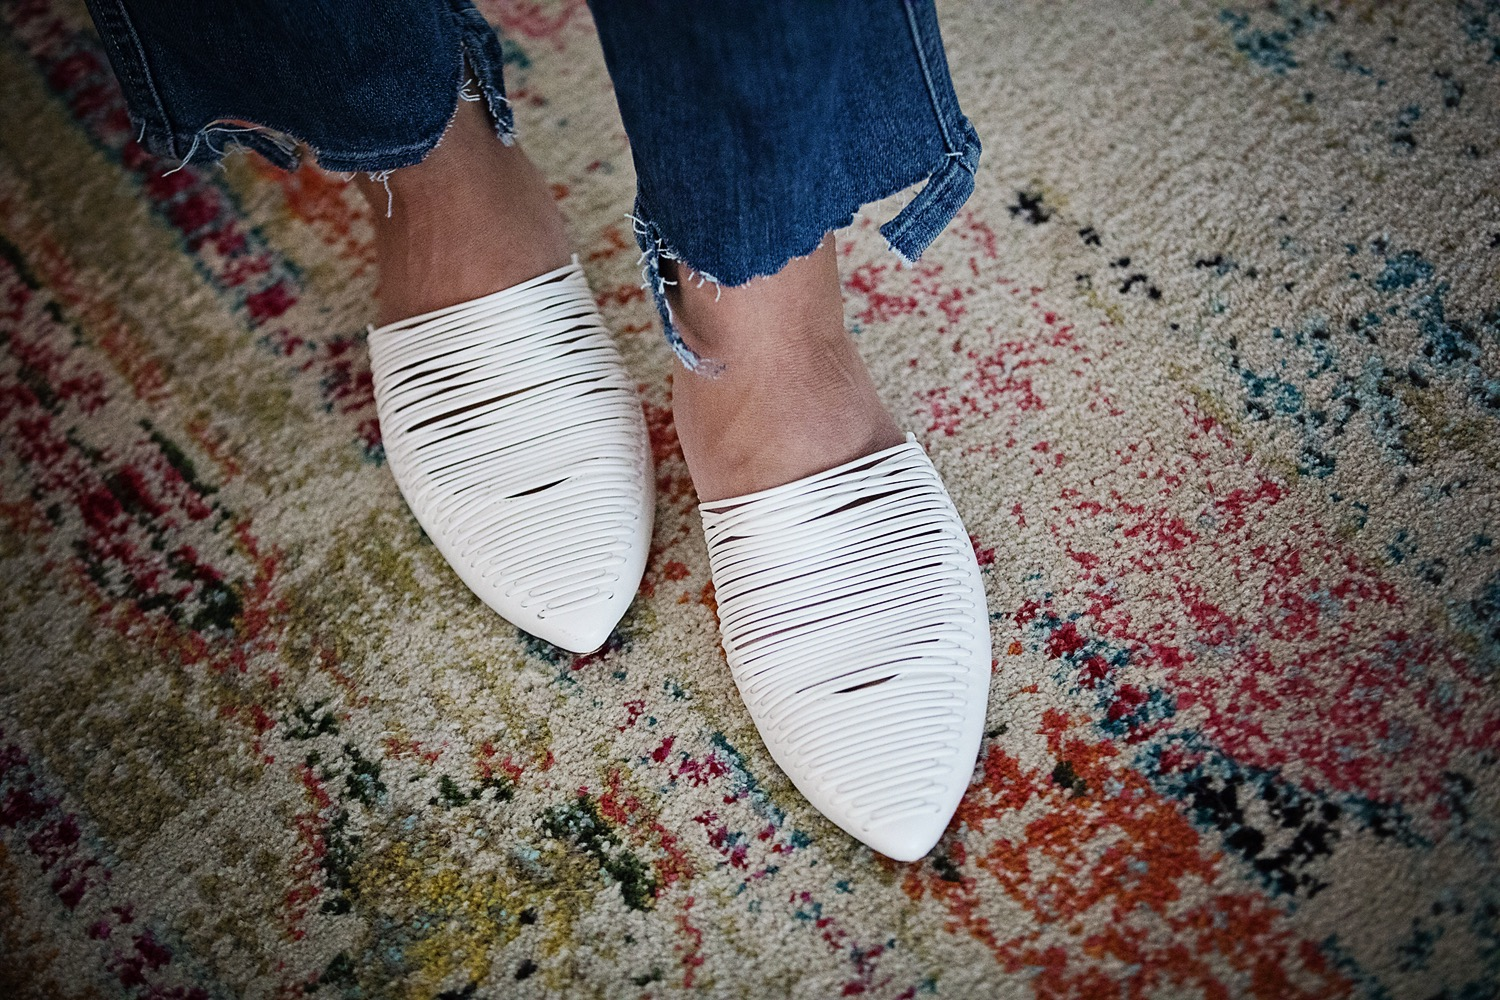 The Motherchic wearing Tory Burch mules